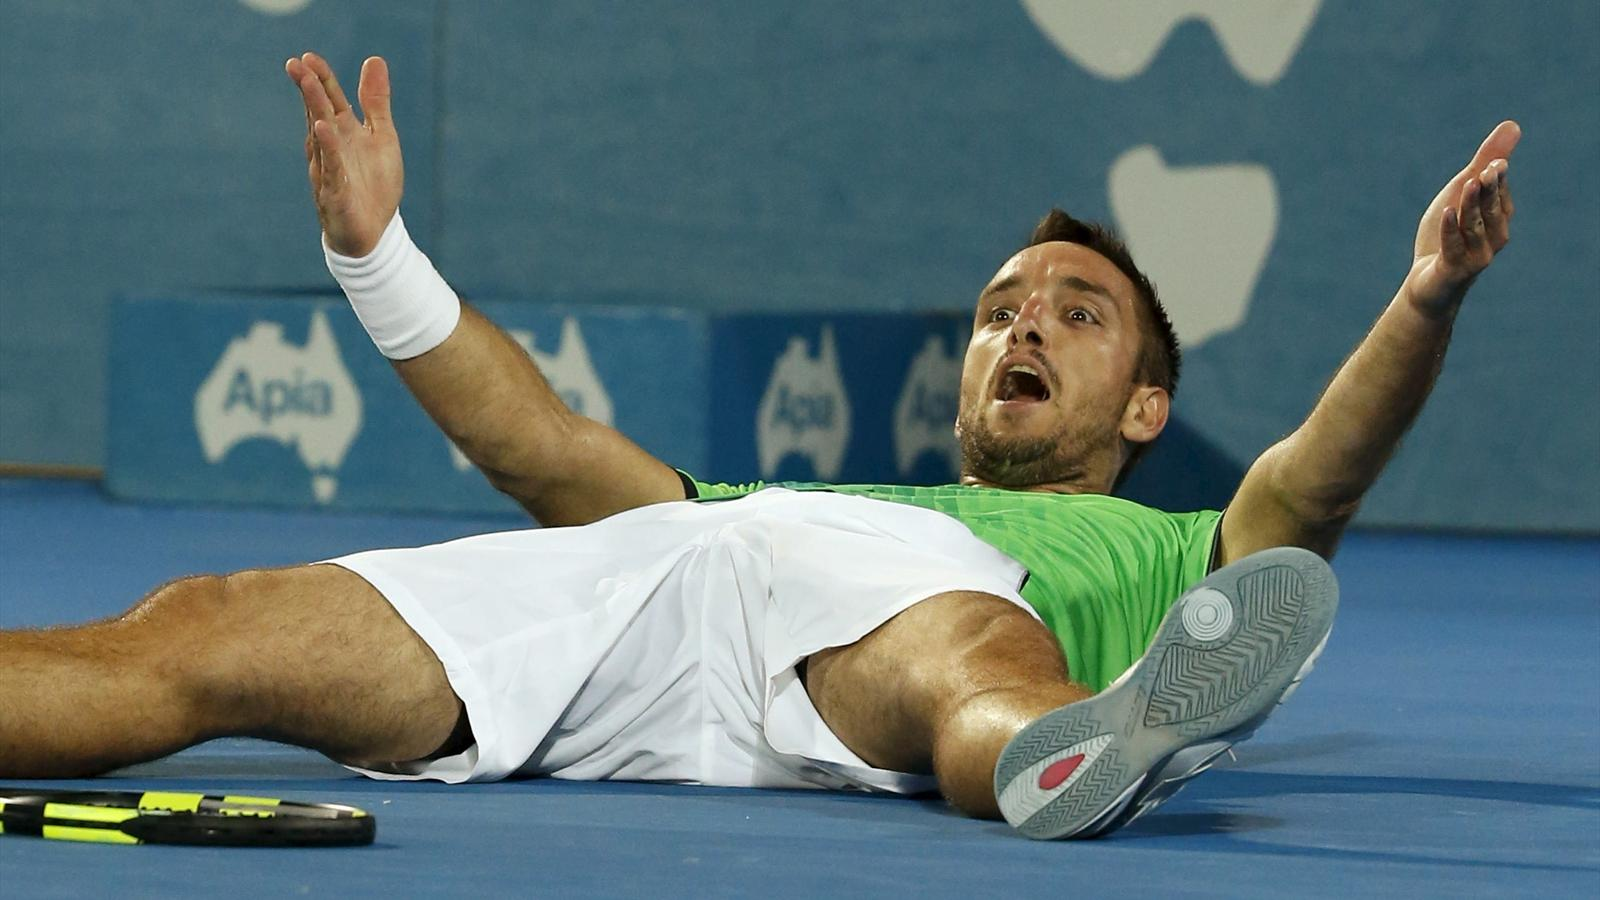 Viktor Troicki of Serbia reacts after defeating Grigor Dimitrov of Bulgaria to win their men's singles final at the Sydney International